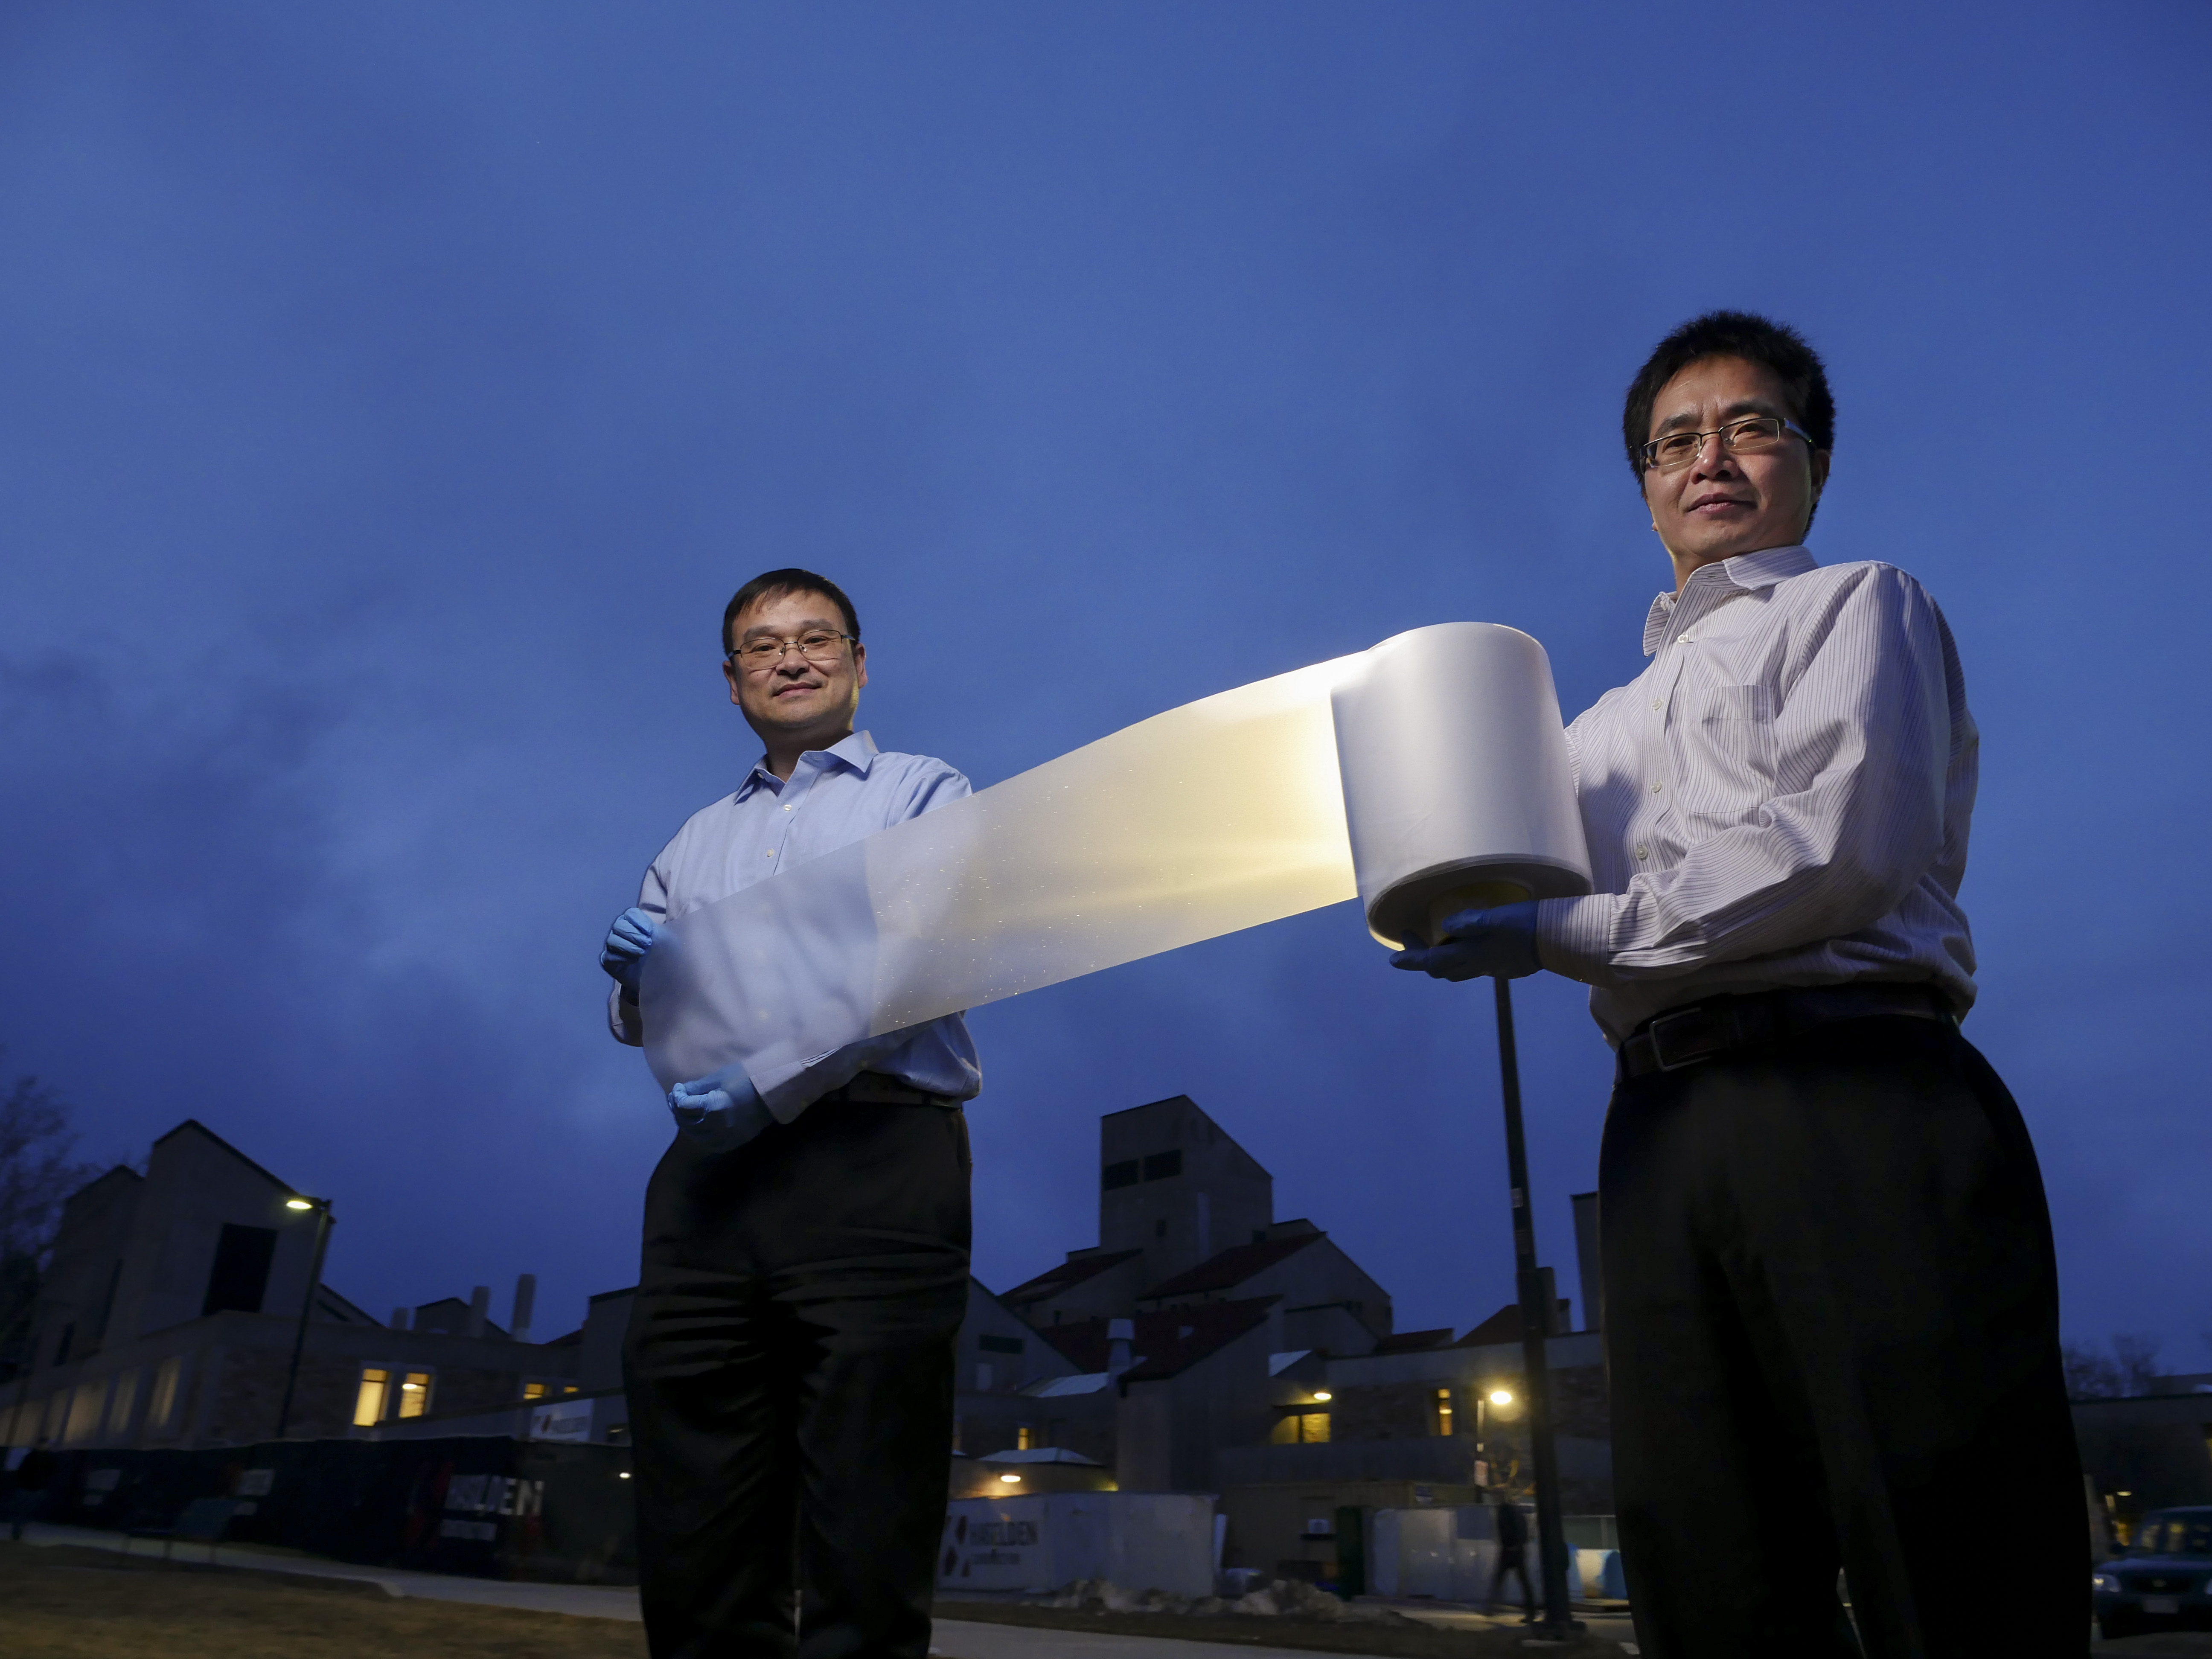 CU Boulder mechanical engineering professors Ronggui Yang, right, and Xiaobo Yin, extends a roll of their special cooling polymer film that they and their team developed near the Engineering Center in Boulder. It's a scalable ,manufactured metamaterial Ñ an engineered material with extraordinary properties not found in nature to act as a kind of air conditioning system for structures. It has the ability to cool objects even under direct sunlight with zero energy and water consumption. When applied to a surface, the metamaterial film cools the object underneath by efficiently reflecting incoming solar energy back into space while simultaneously allowing the surface to shed its own heat in the form of infrared thermal radiation. (Photo by Glenn Asakawa/University of Colorado)